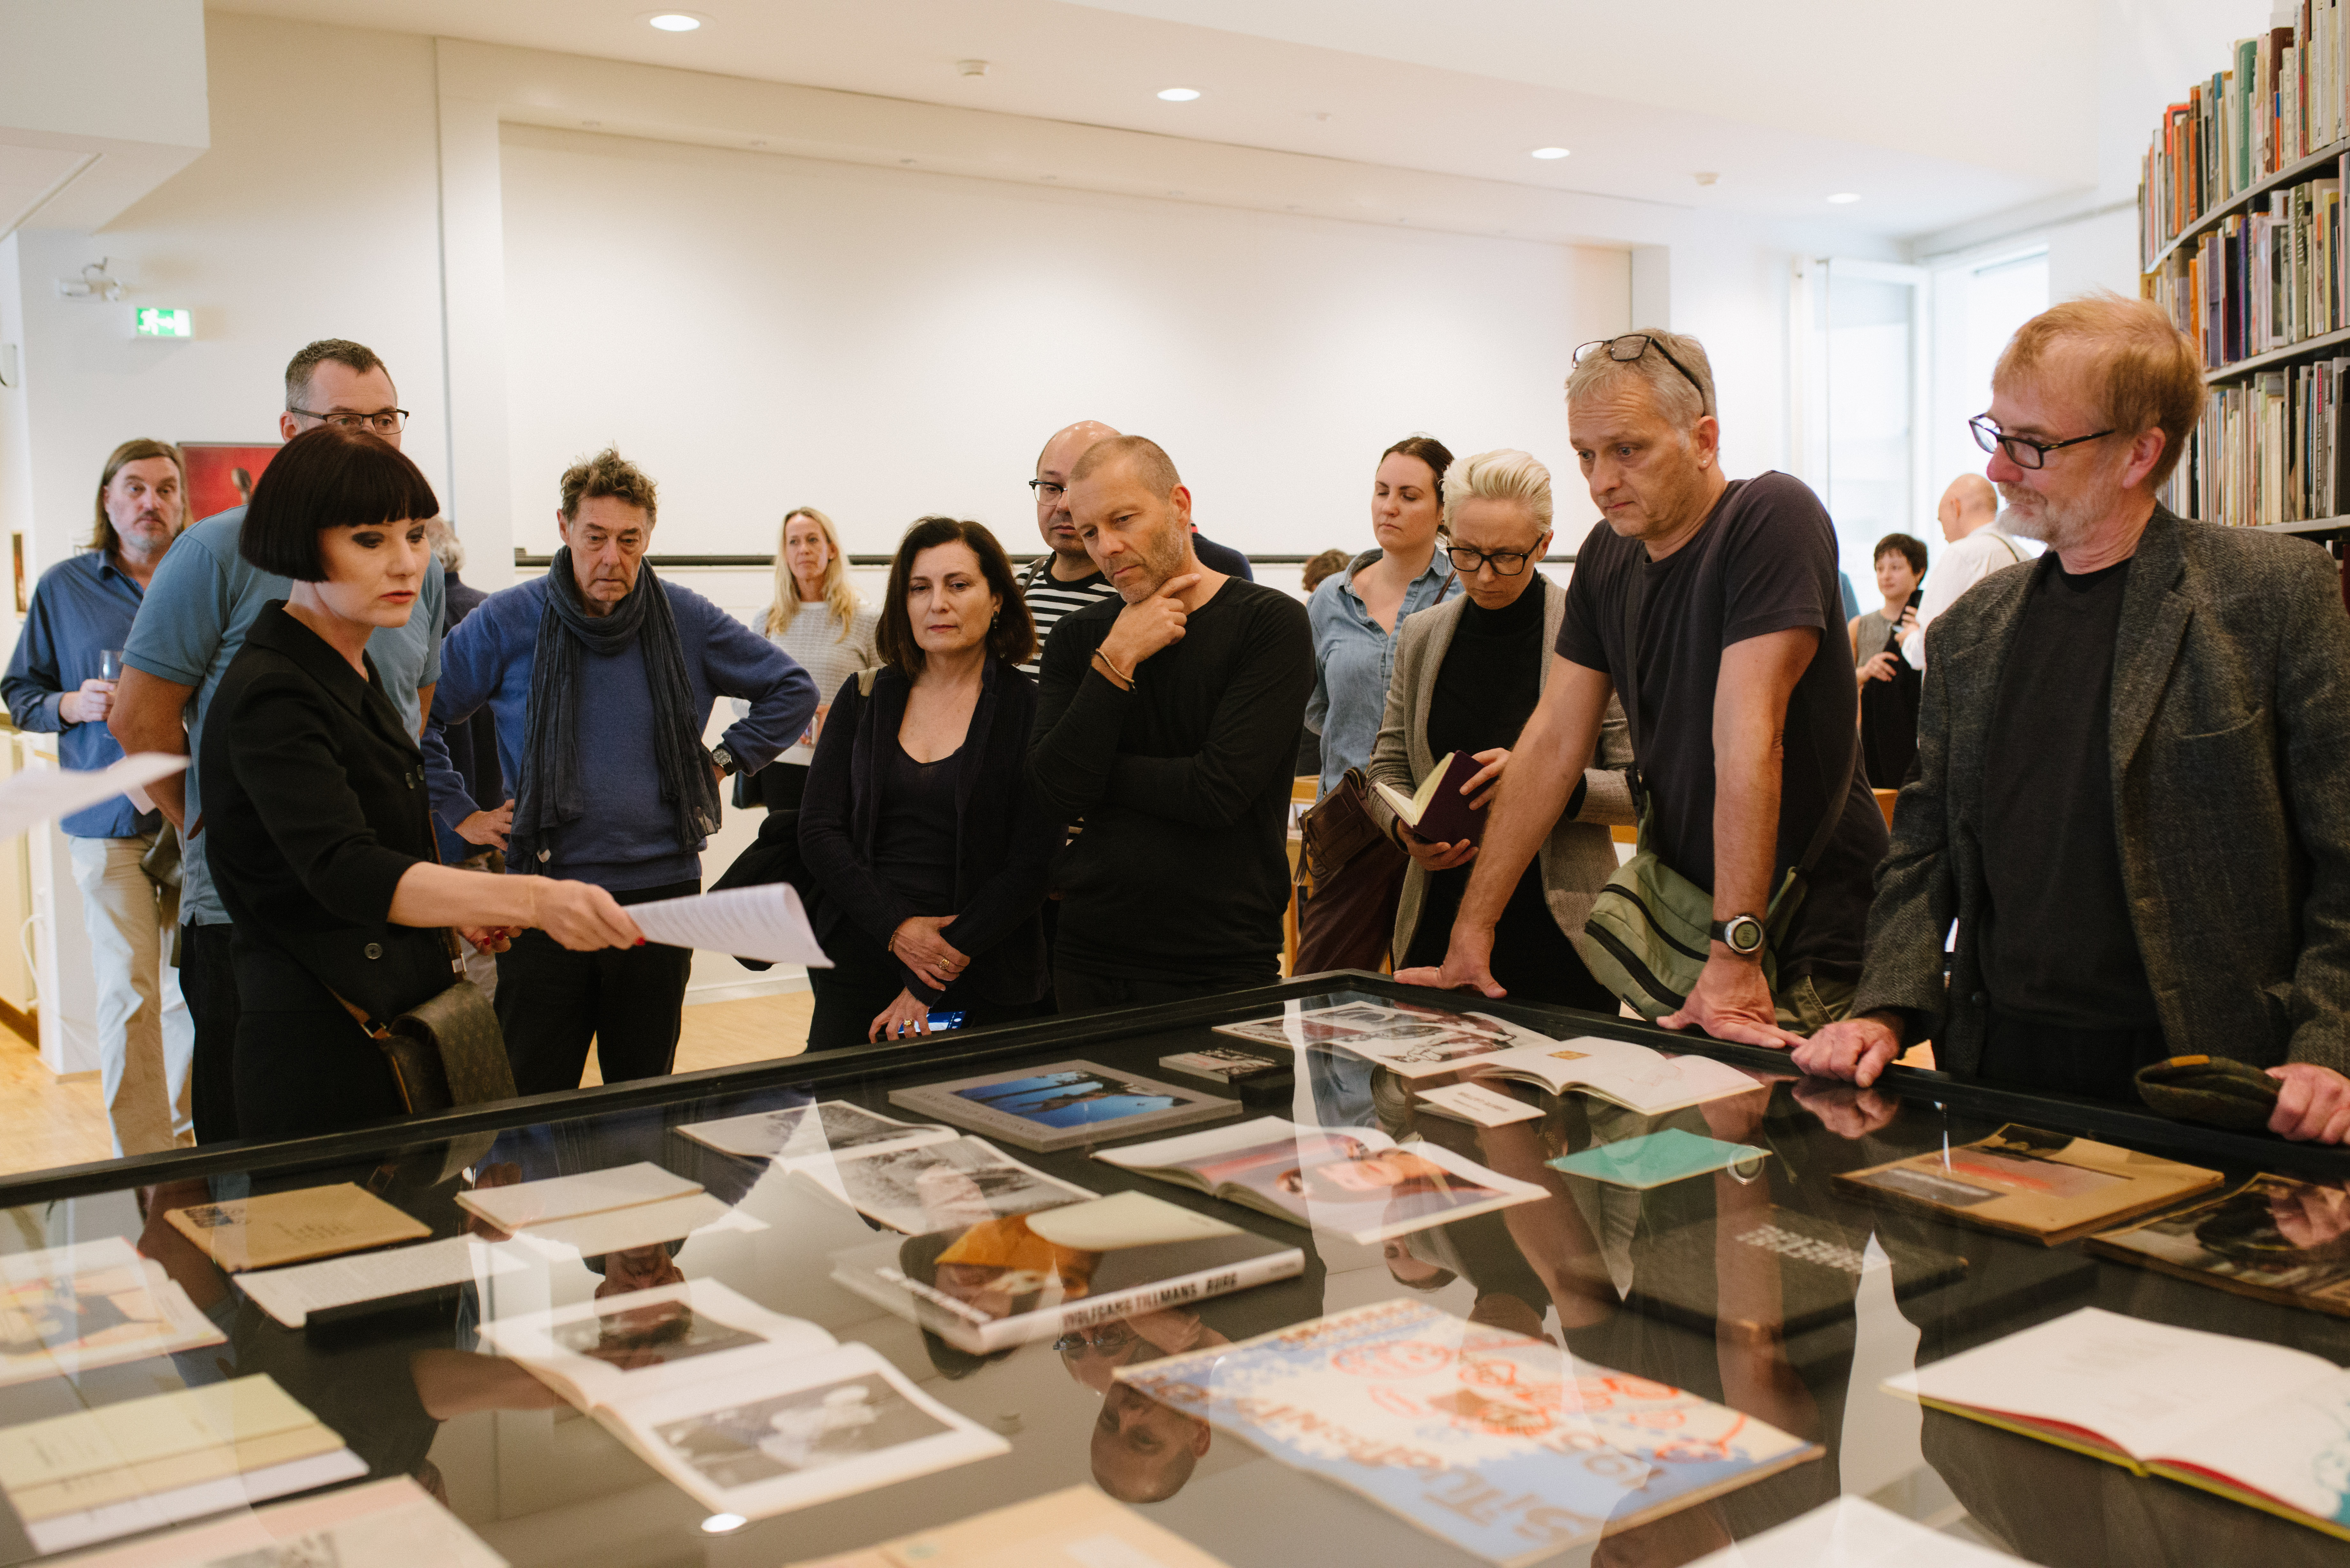 PWA 2018: Anne Elisabeth Toft presents the selection of books she has curated from the ARoS Art Museum's archives.